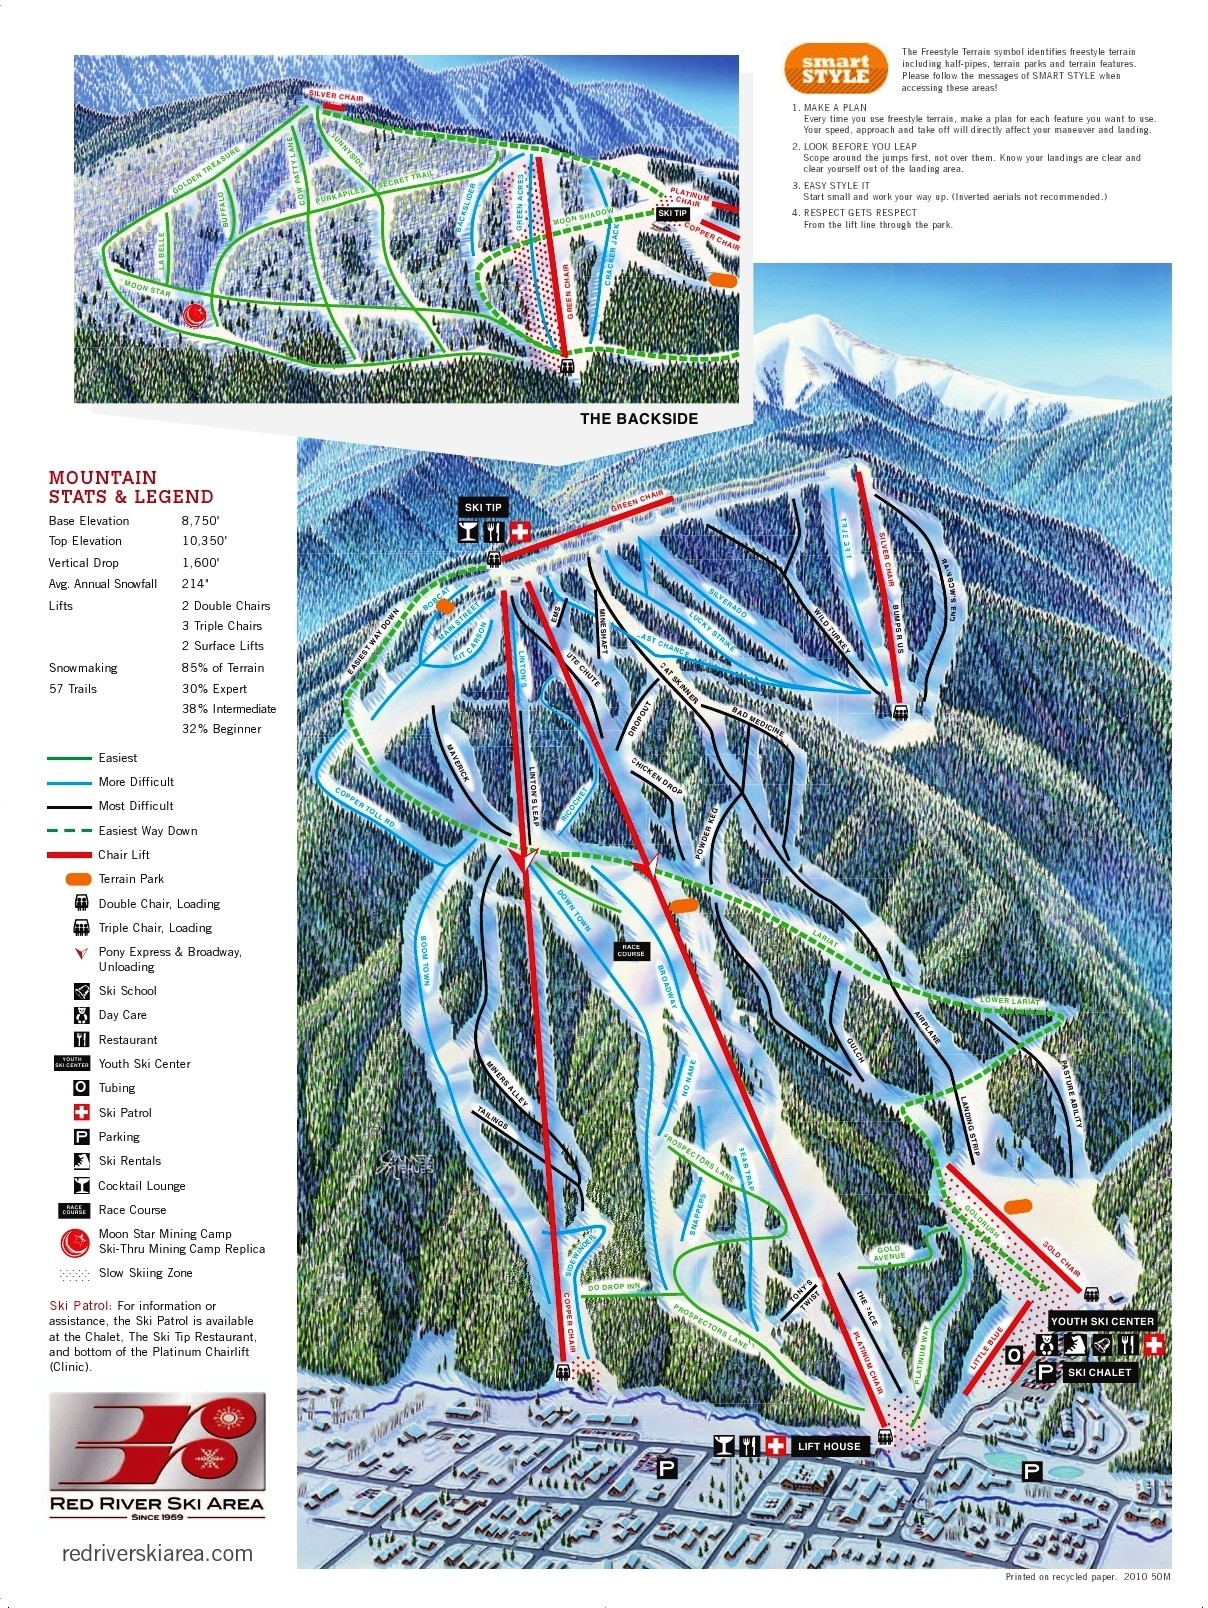 red river ski area trail map • piste map • panoramic mountain map